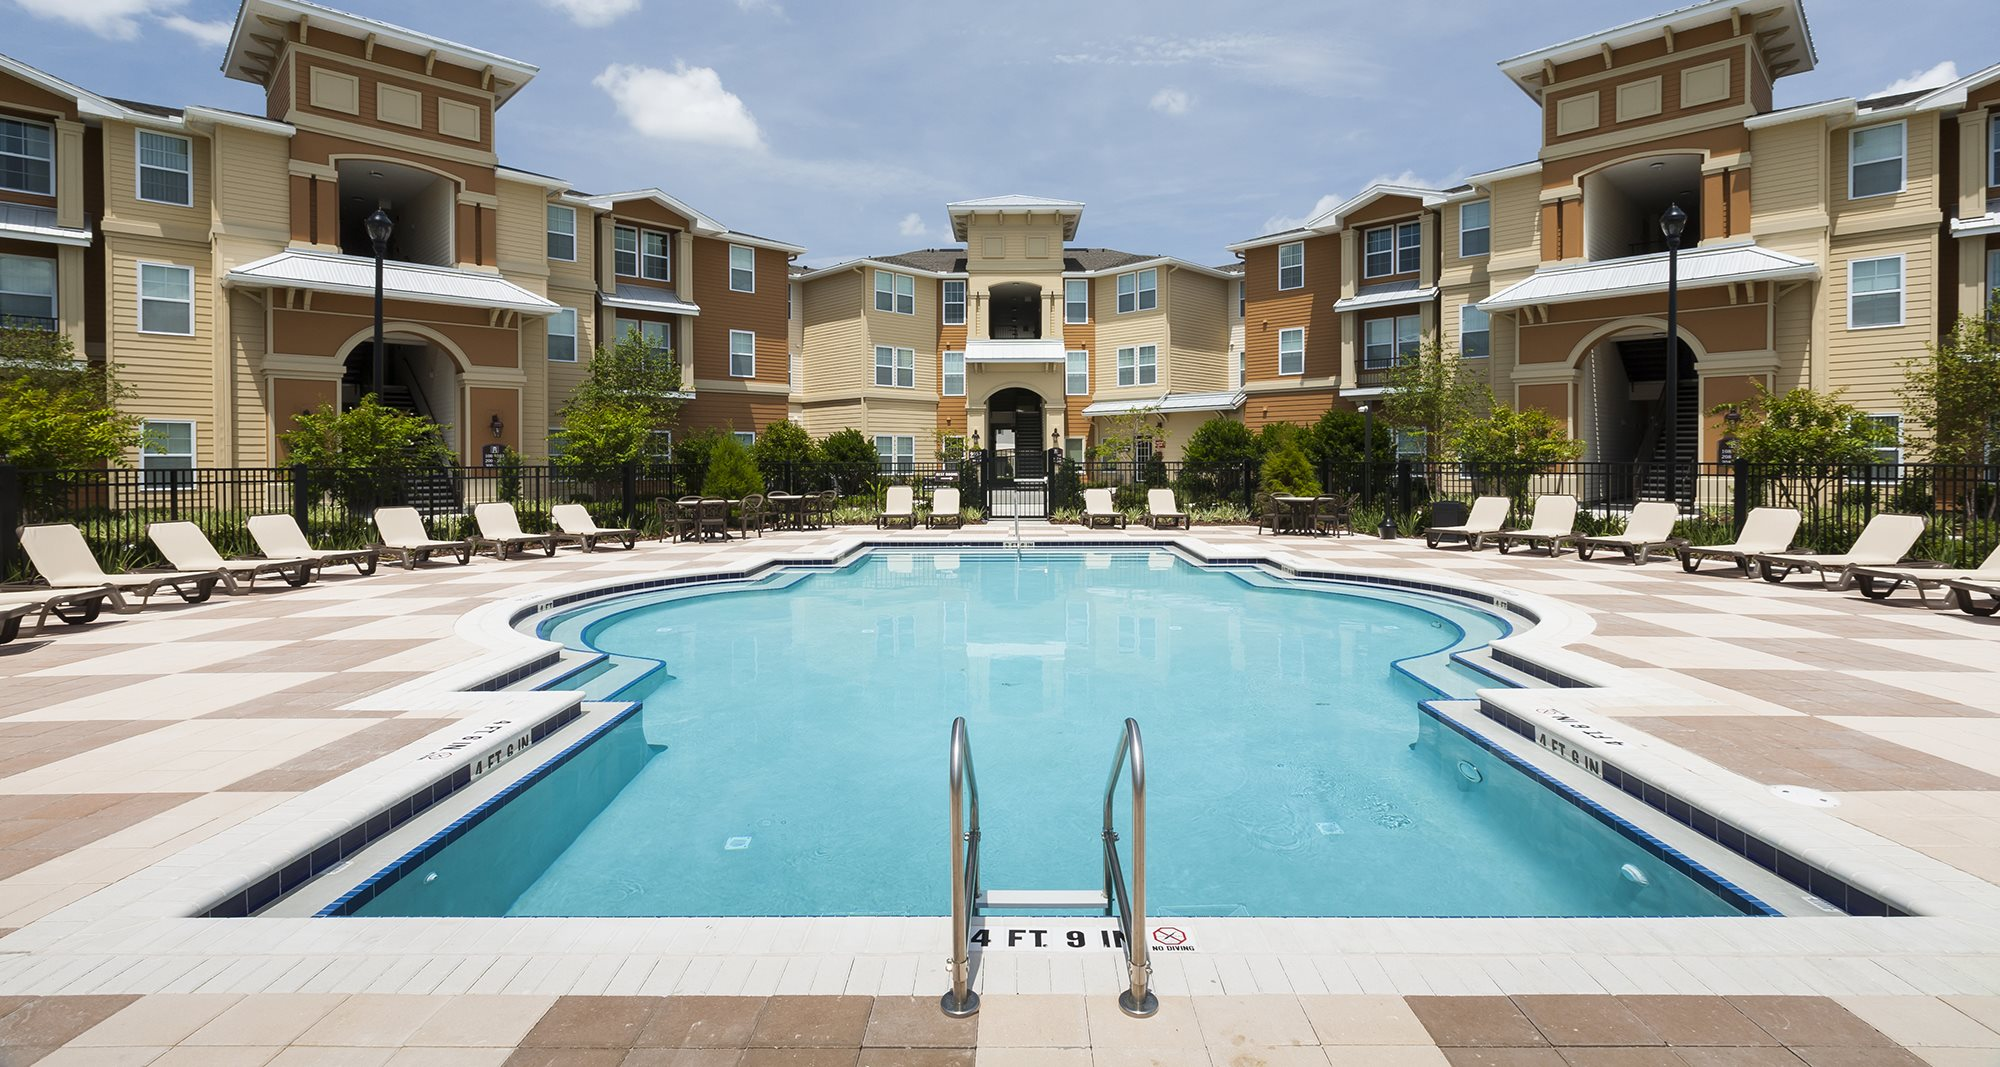 River Ridge Apartments for rent in Orlando, FL. Make this community your new home or visit other Concord Rents communities at ConcordRents.com. Pool